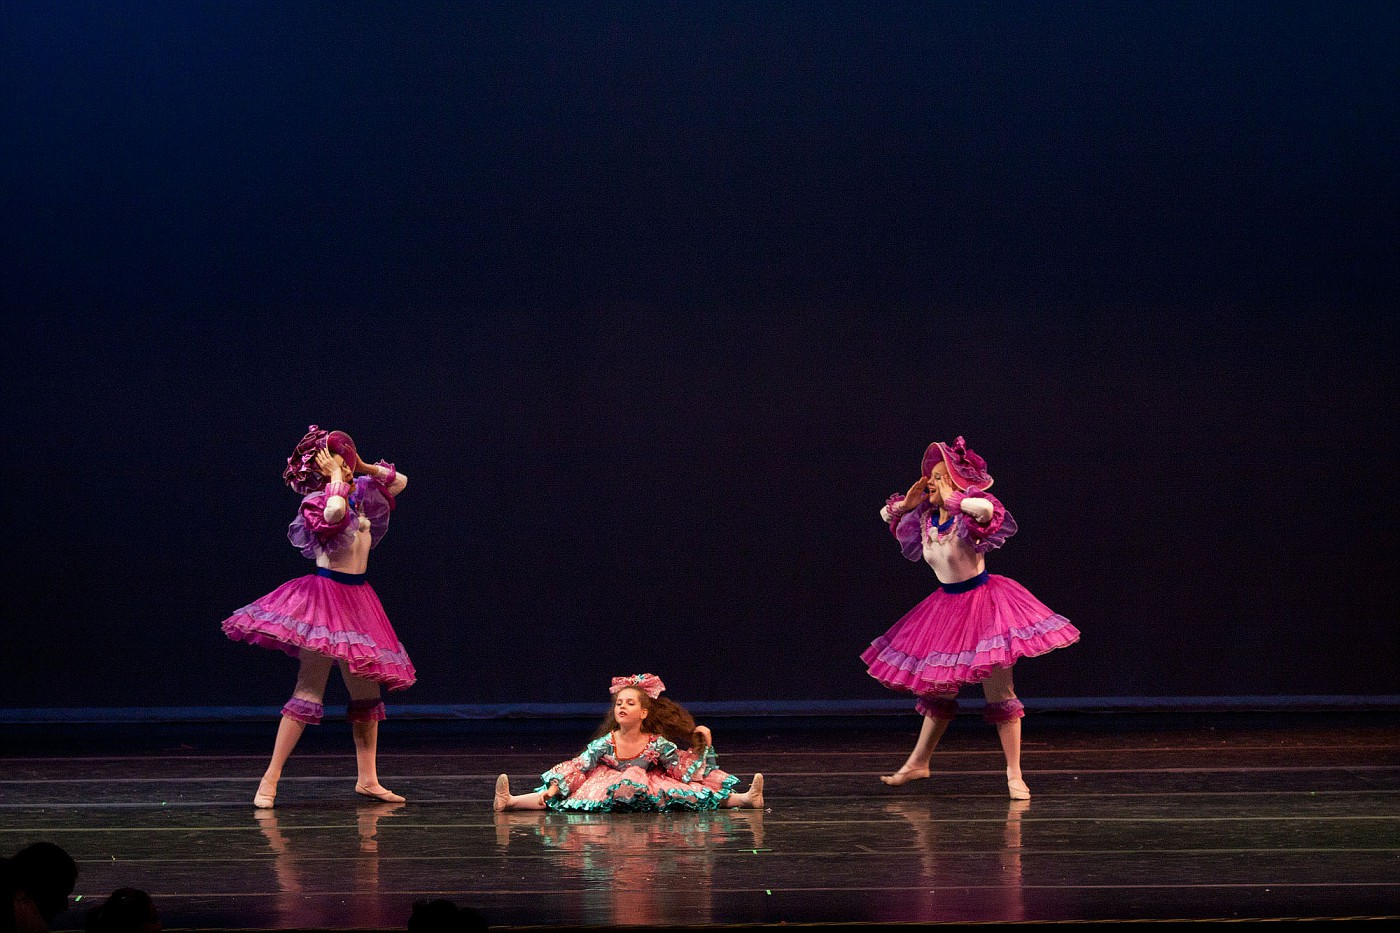 portrait-photography-children-ballet-20100617_0024.jpg